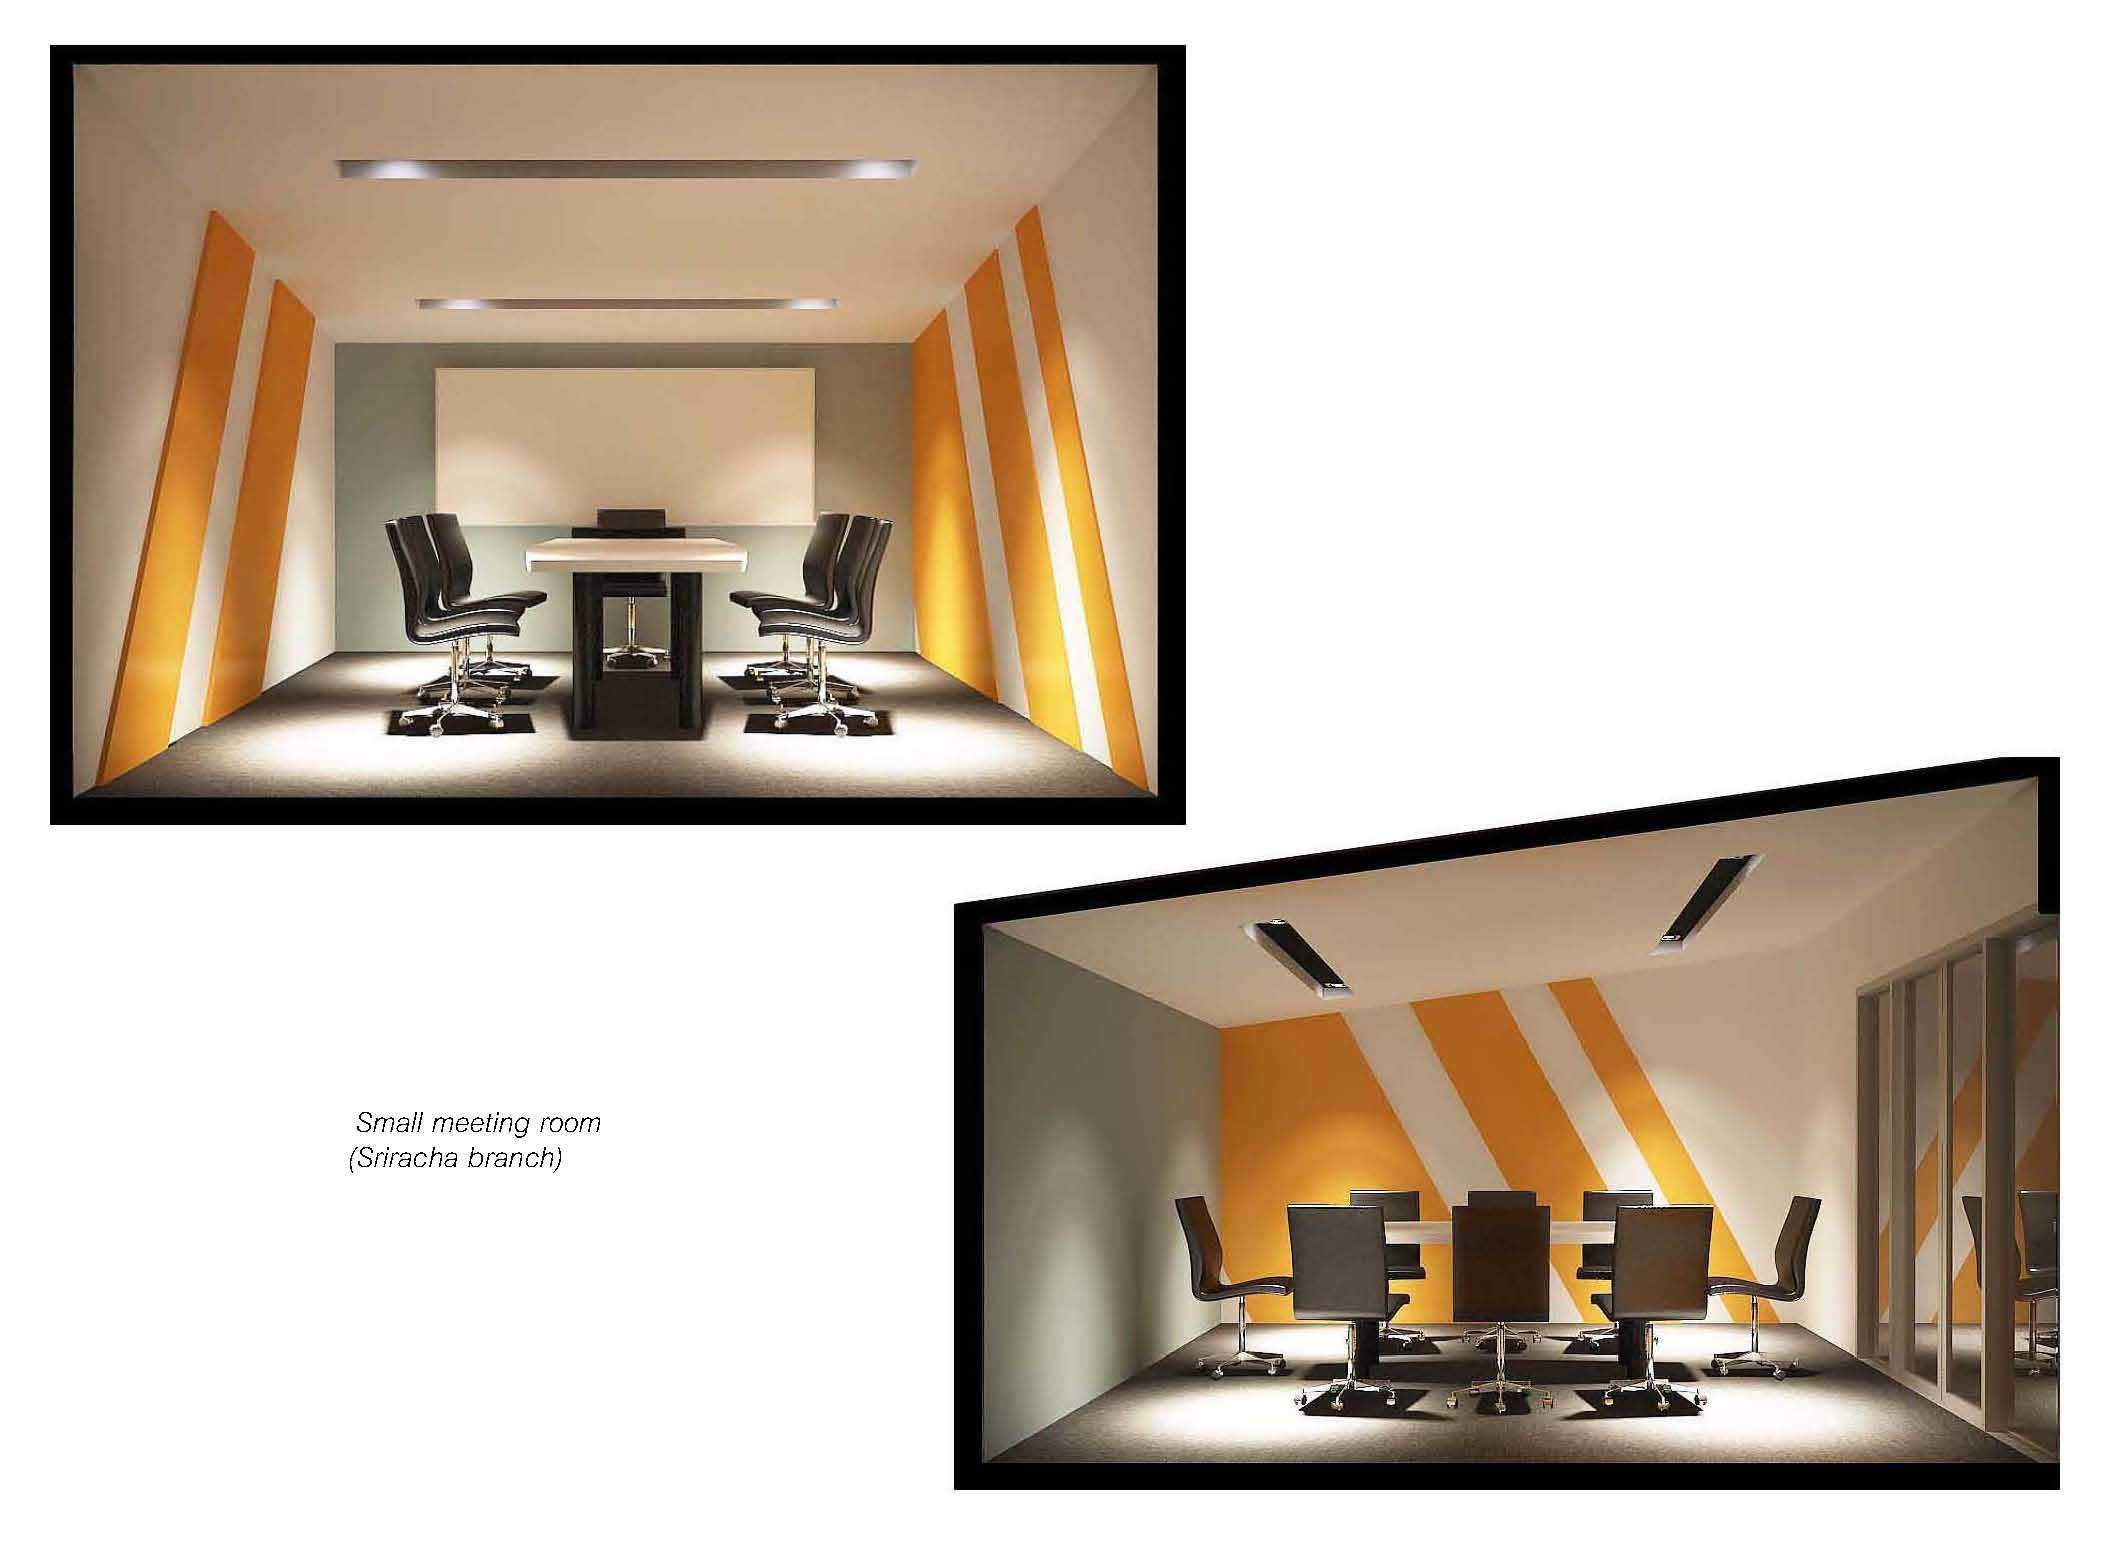 Meeting room (Small size)